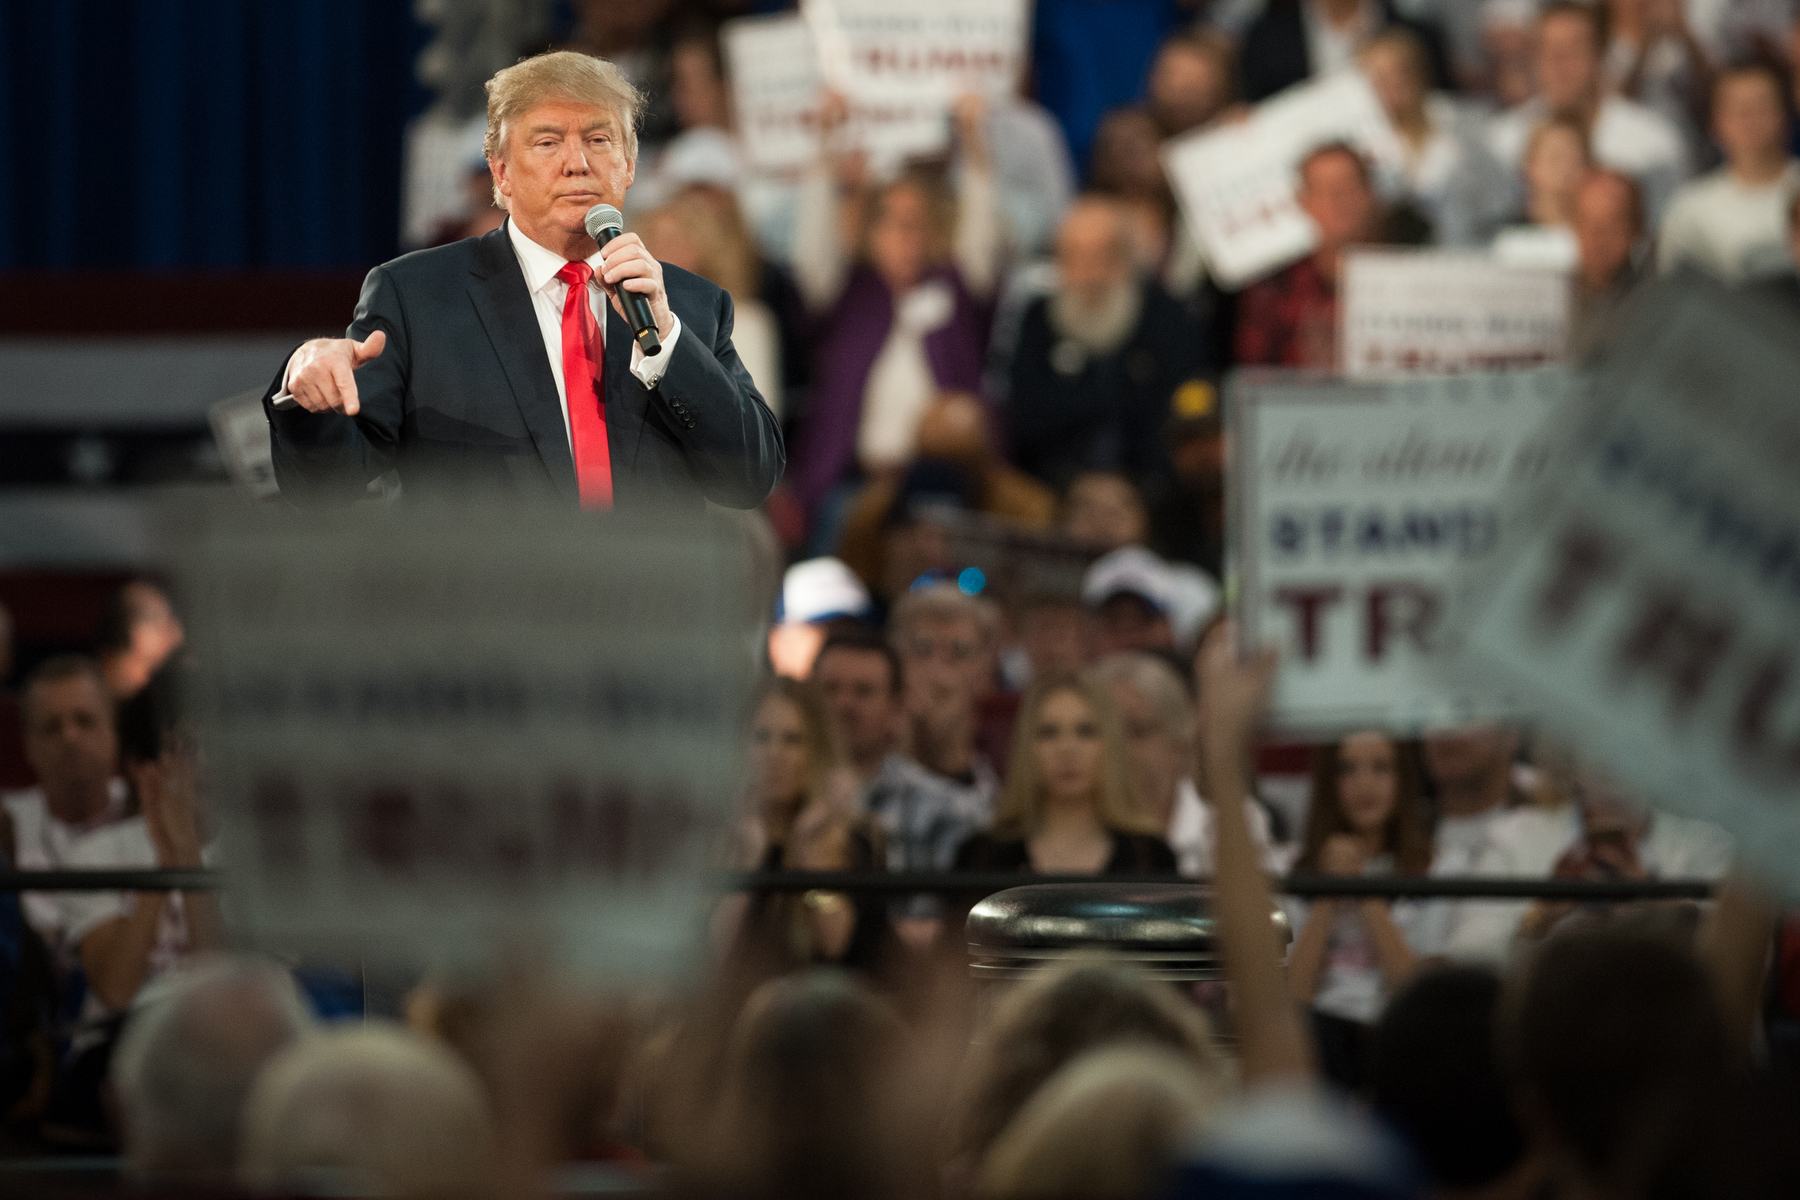 Donald Trump, president and chief executive of Trump Organization Inc. and 2016 Republican presidential candidate, speaks during a campaign event in Des Moines, Iowa, U.S., on Friday, Dec. 11, 2015. Mark Kauzlarich/Bloomberg